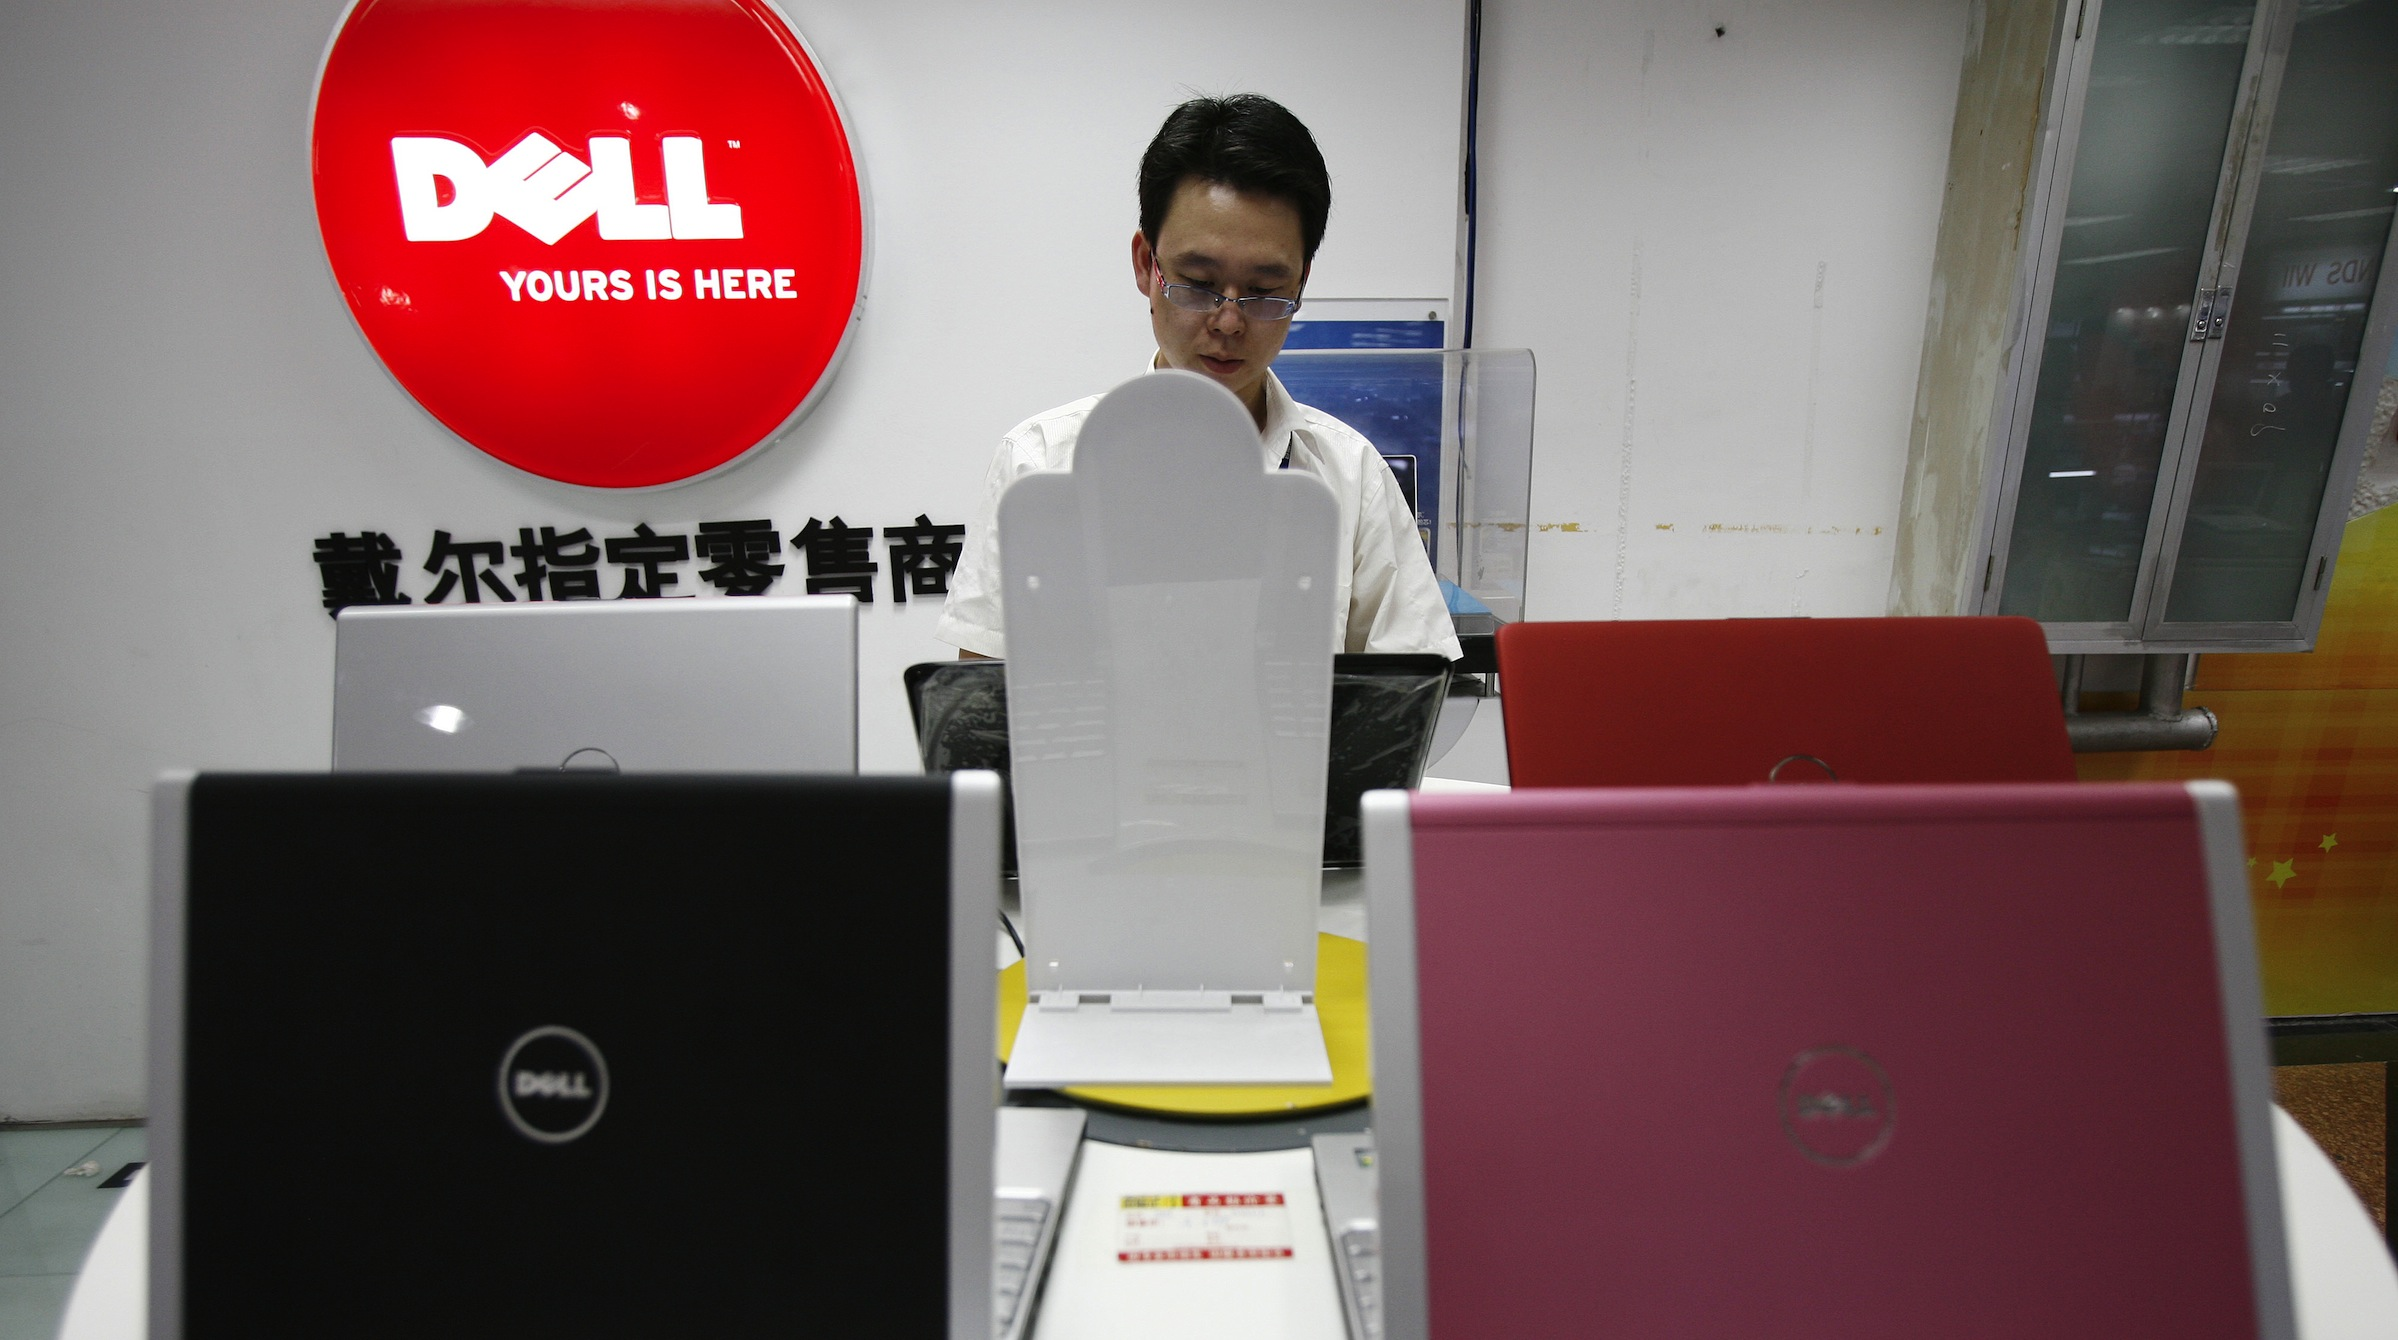 A man works behind Dell laptops on display at a computer store in Beijing, China, Tuesday, June 30, 2009. A California company that says its software was illegally used in Beijing's new Internet filter threatened possible legal action as PC makers faced a Wednesday deadline to supply the system with computers. U.S. trade officials and industry and free-speech groups have also appealed to Beijing to revoke its order, which requires suppliers to pre-install the Green Dam filtering software or include it on a disk with each PC sold from July 1. (AP Photo/Greg Baker)